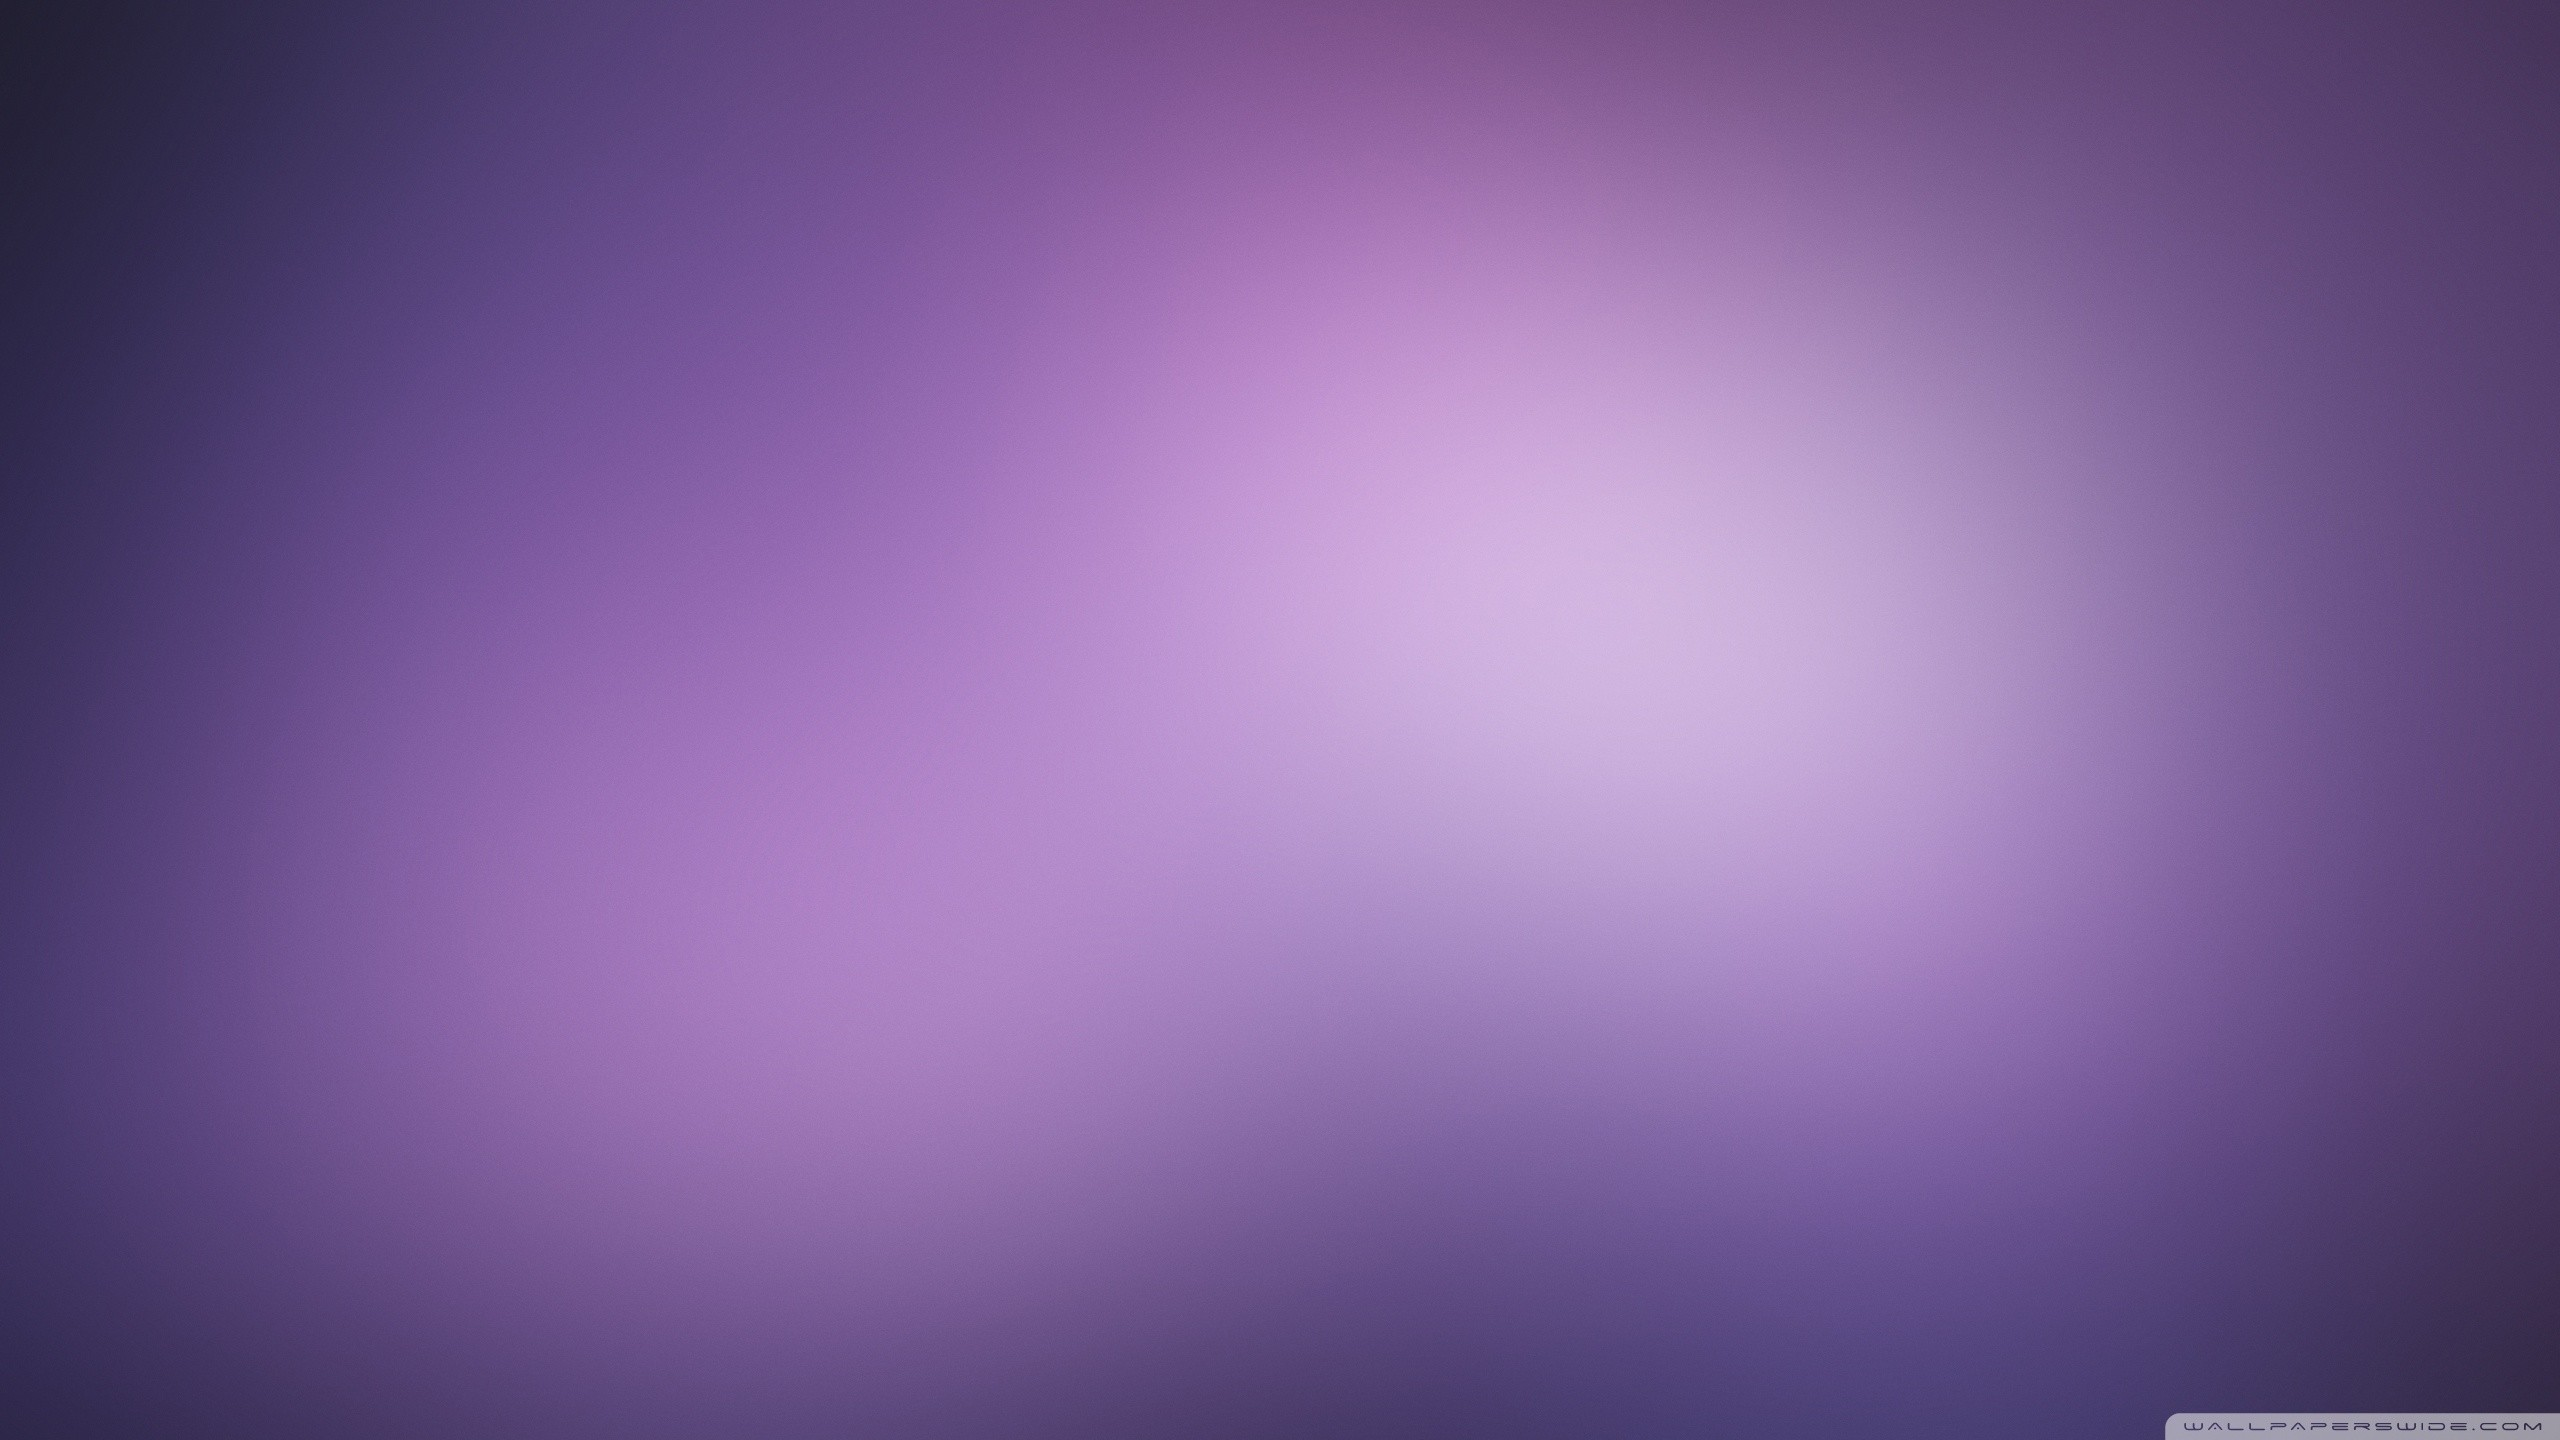 Pretty Wallpapers Rose Quotes Purple Background Hd 183 ①